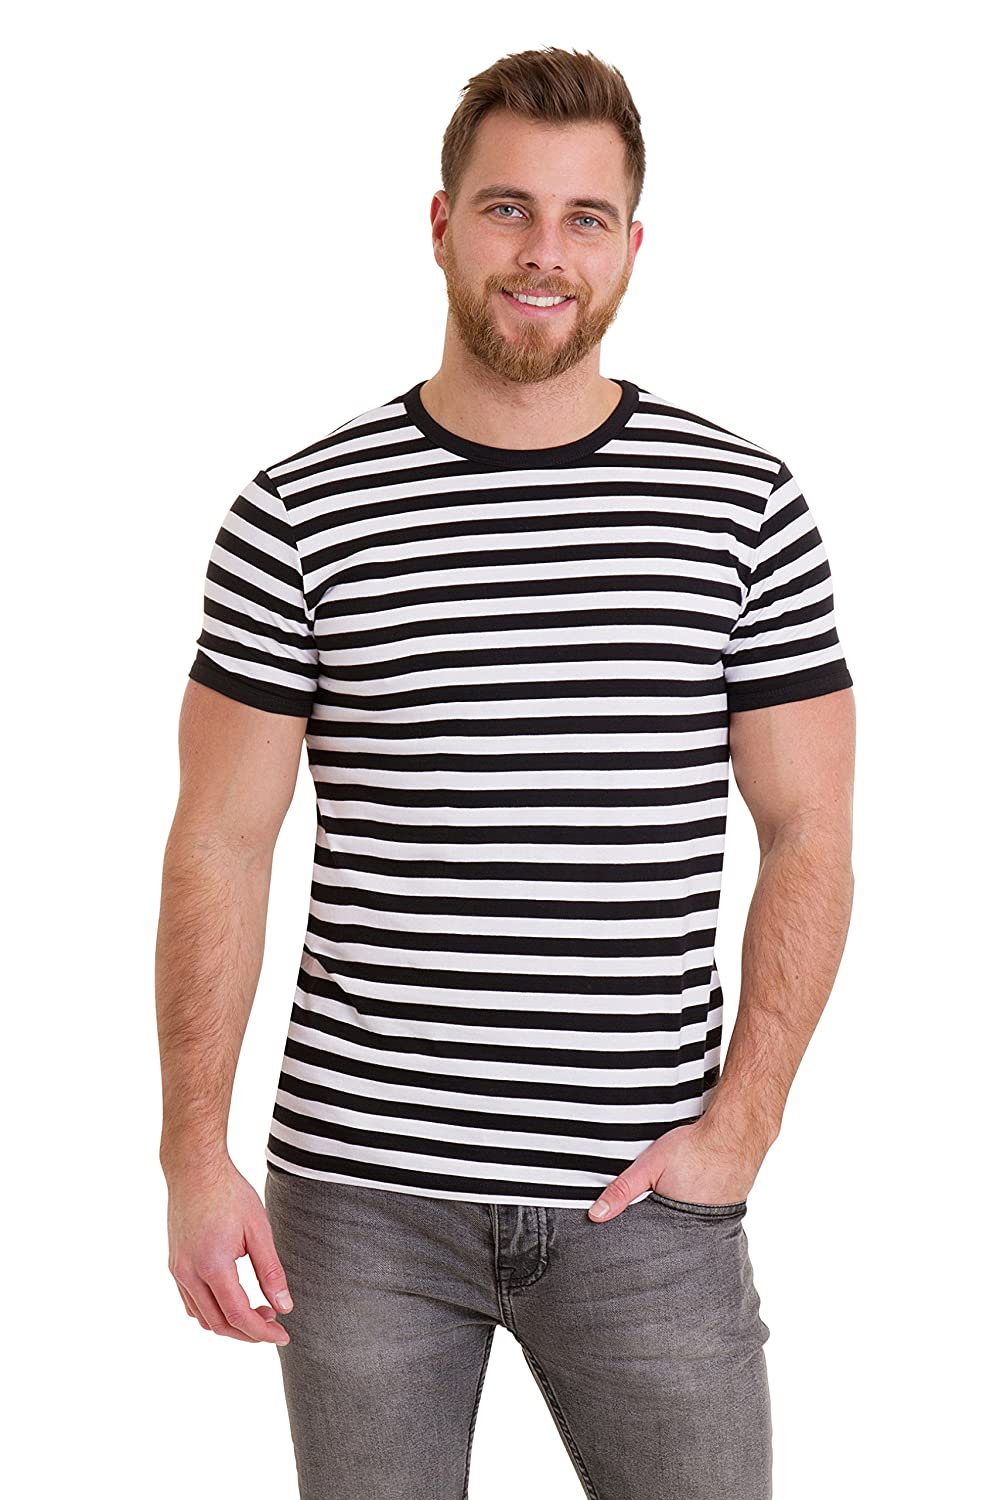 1960s Men's Clothing, 70s Men's Fashion Run & Fly Mens 60s Retro Black & White Striped Short Sleeve T Shirt $19.95 AT vintagedancer.com